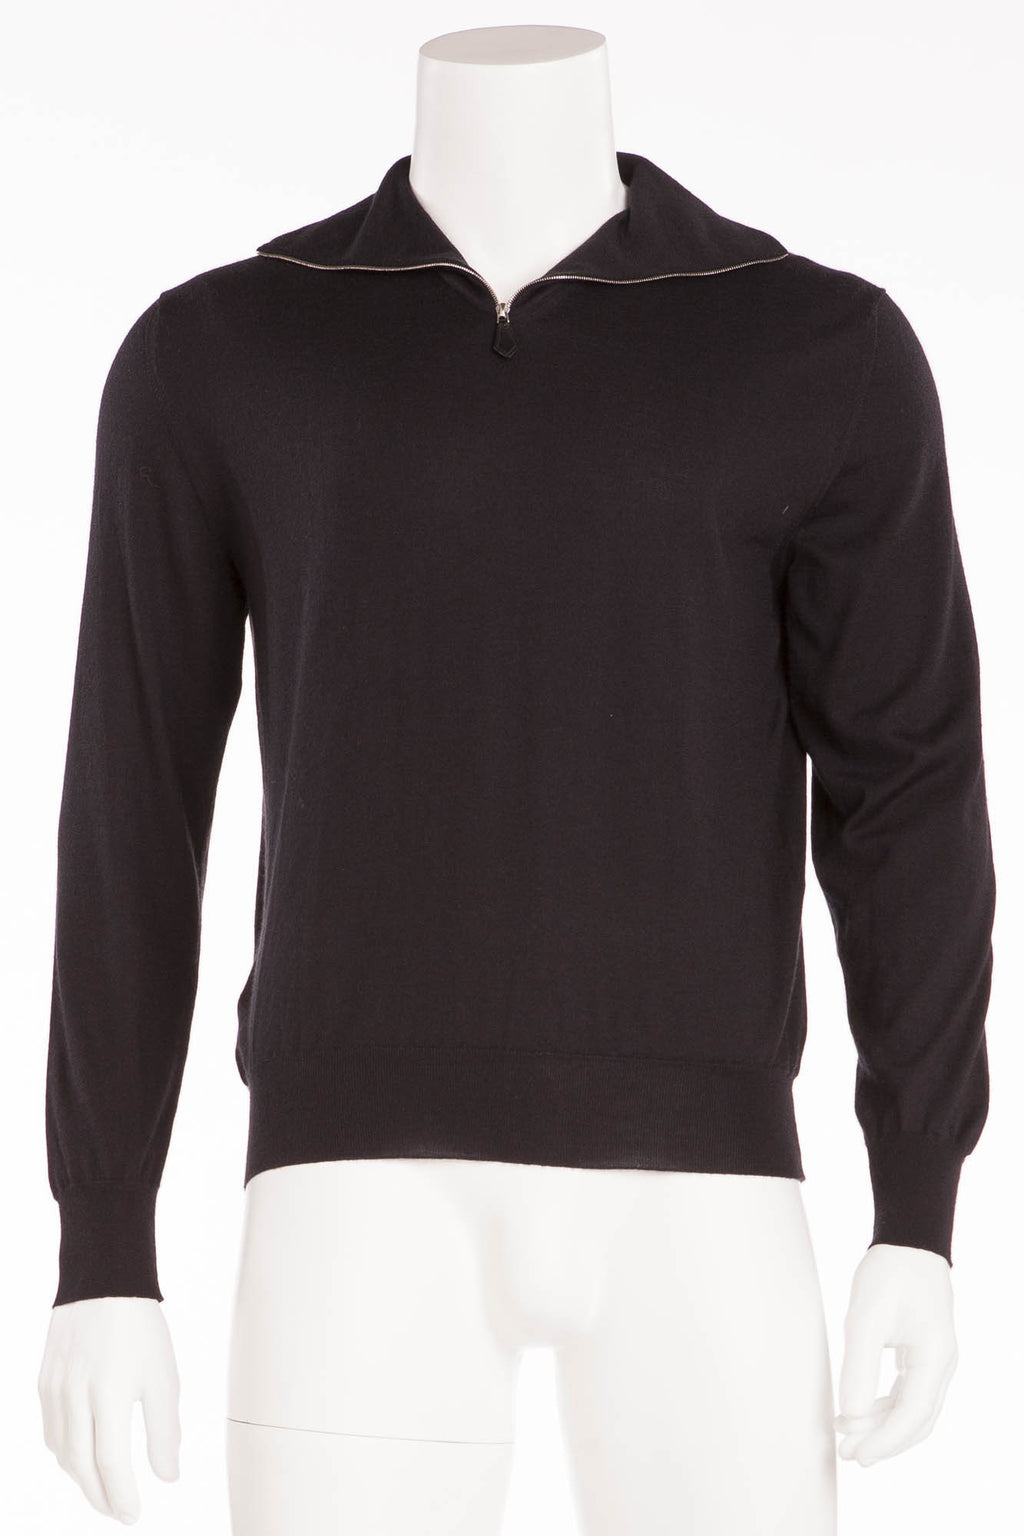 Hermes - Black Long Sleeve Zip Neck Cashmere Sweater - XL